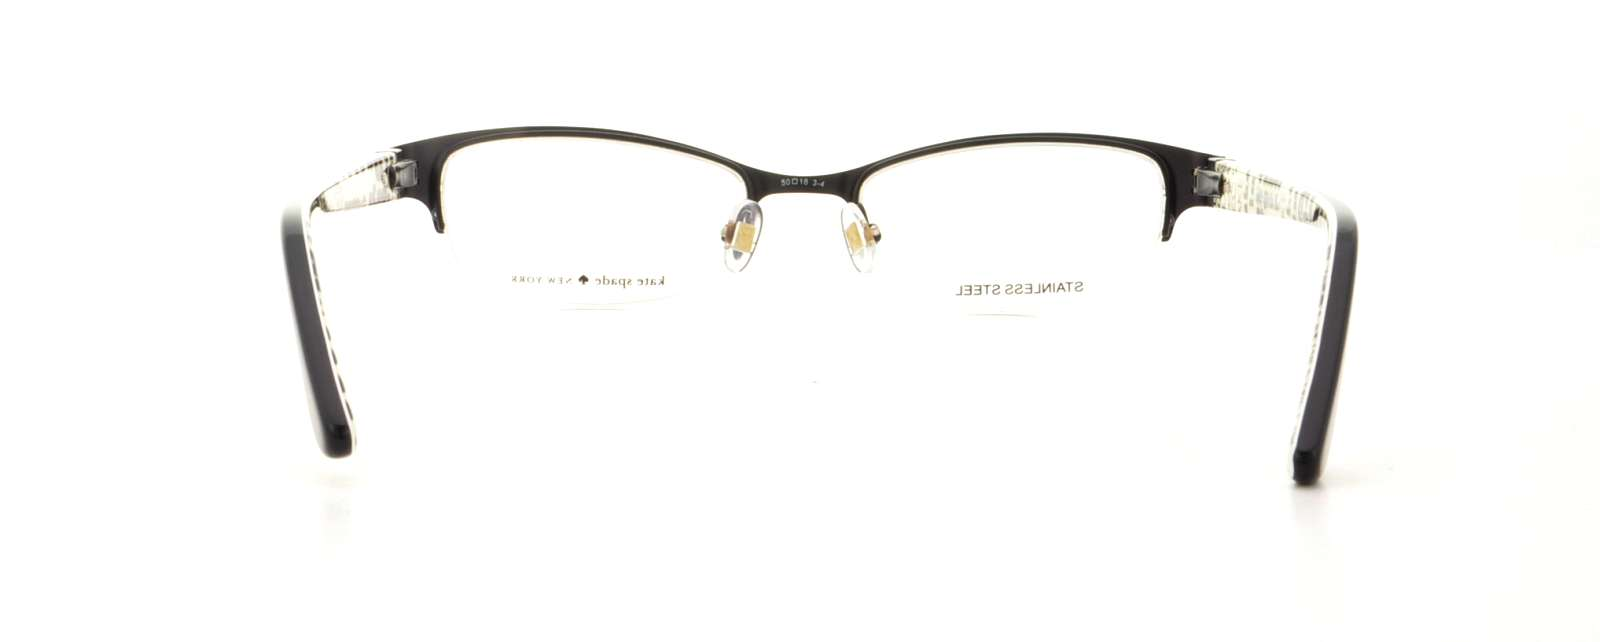 Designer Frames Outlet Kate Spade ADERYN - What is invoice processing online glasses store